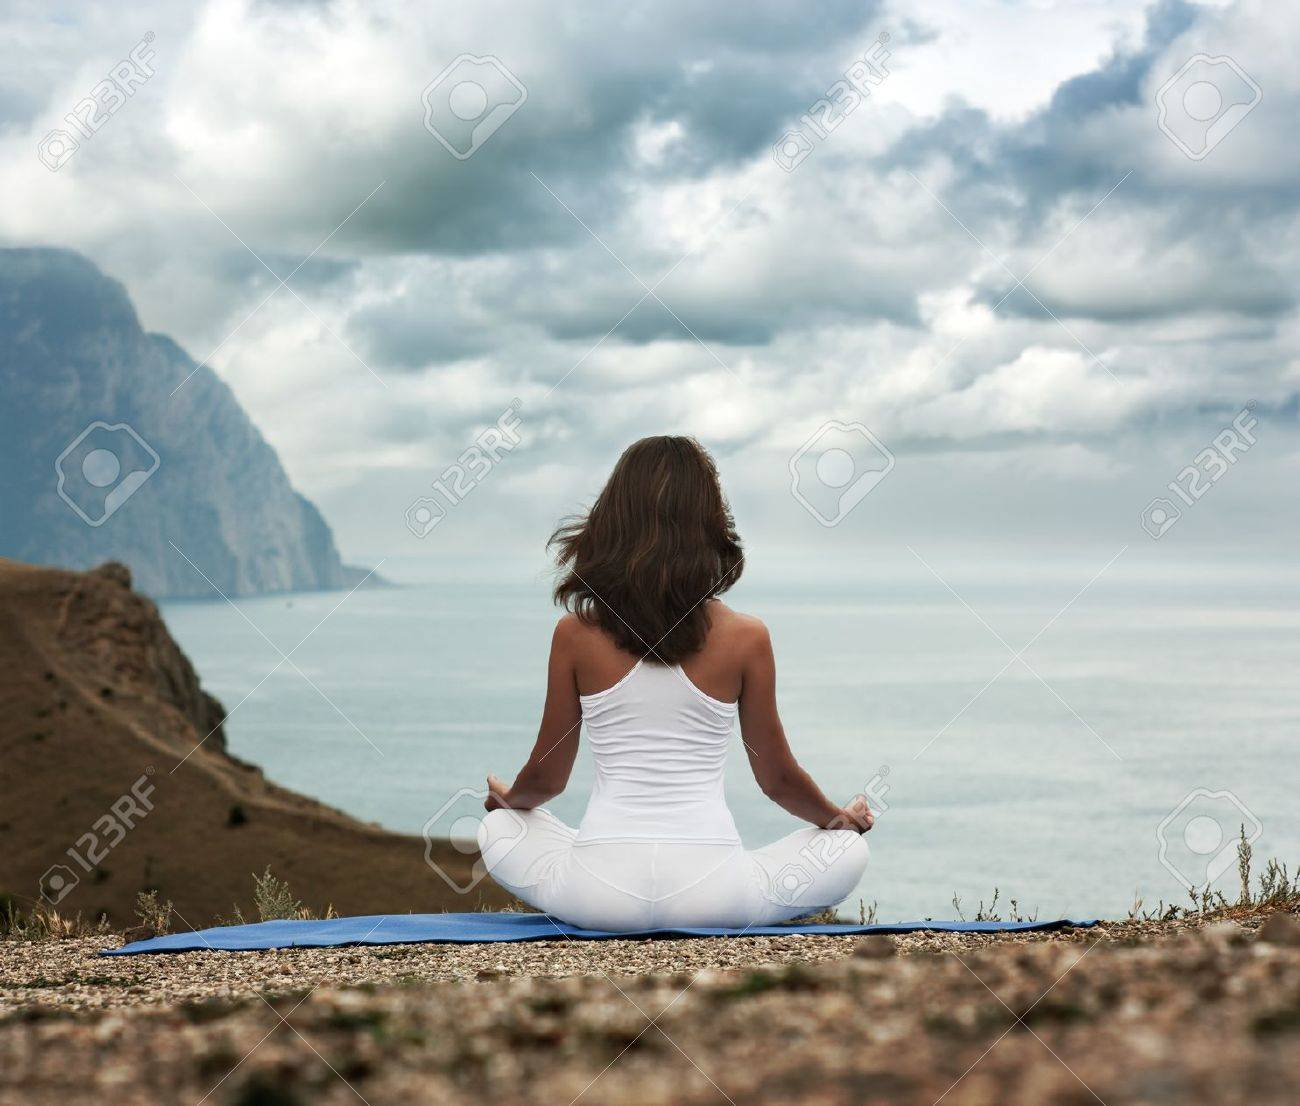 Young Woman in Lotus Position near the Ocean  Rear View Stock Photo - 17413964